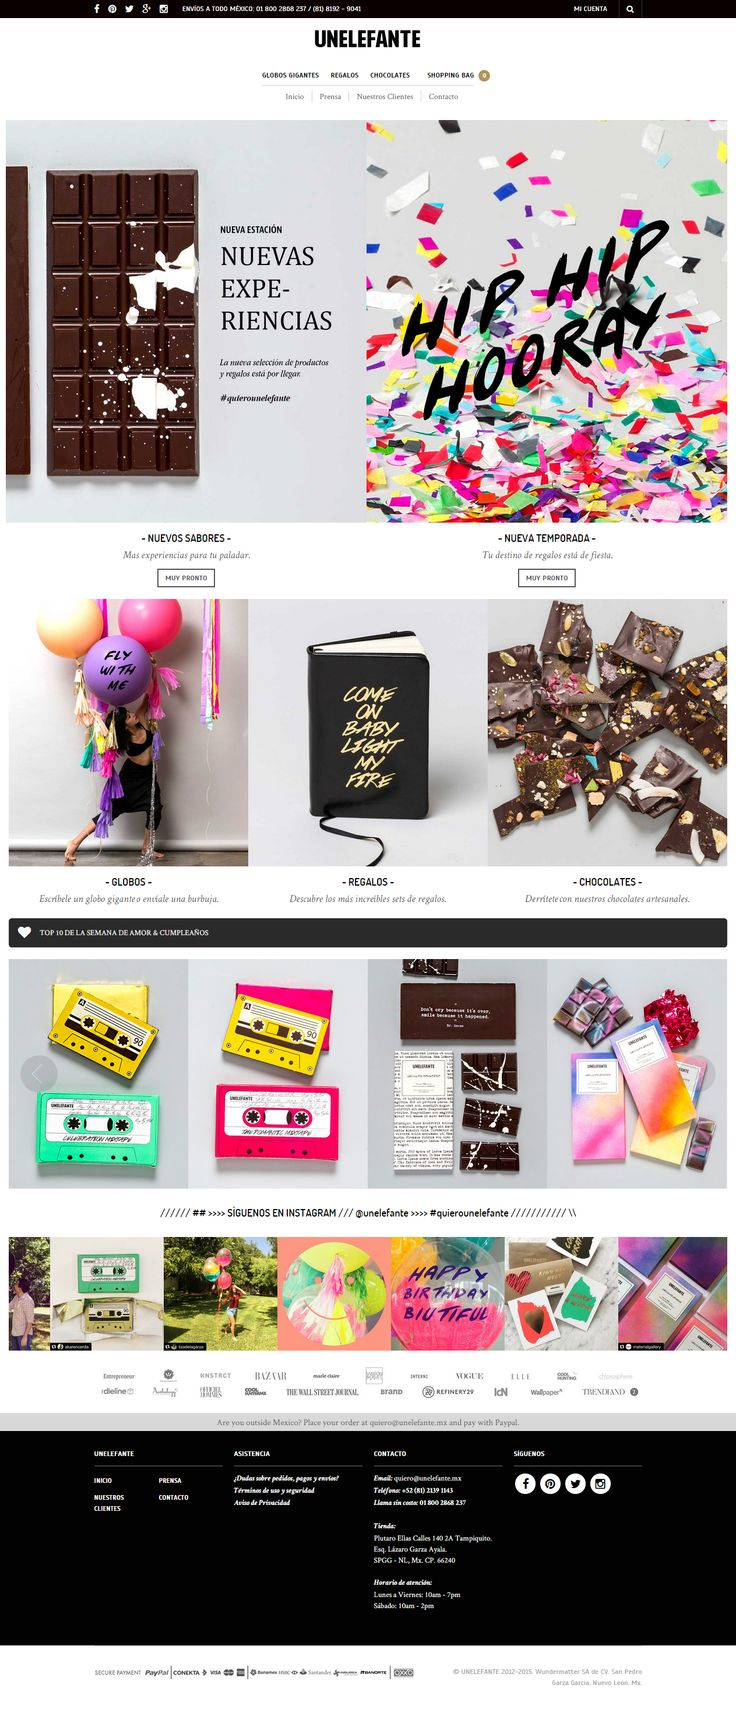 unelefante.mx was built using The Retailer WP Theme https://themeforest.net/item/the-retailer-responsive-wordpress-theme/4287447?utm_source=pinterest.com&utm_medium=social&utm_content=unelefante&utm_campaign=showcase  #wordpress #webdesign #onlineshop #gifts #chocolate